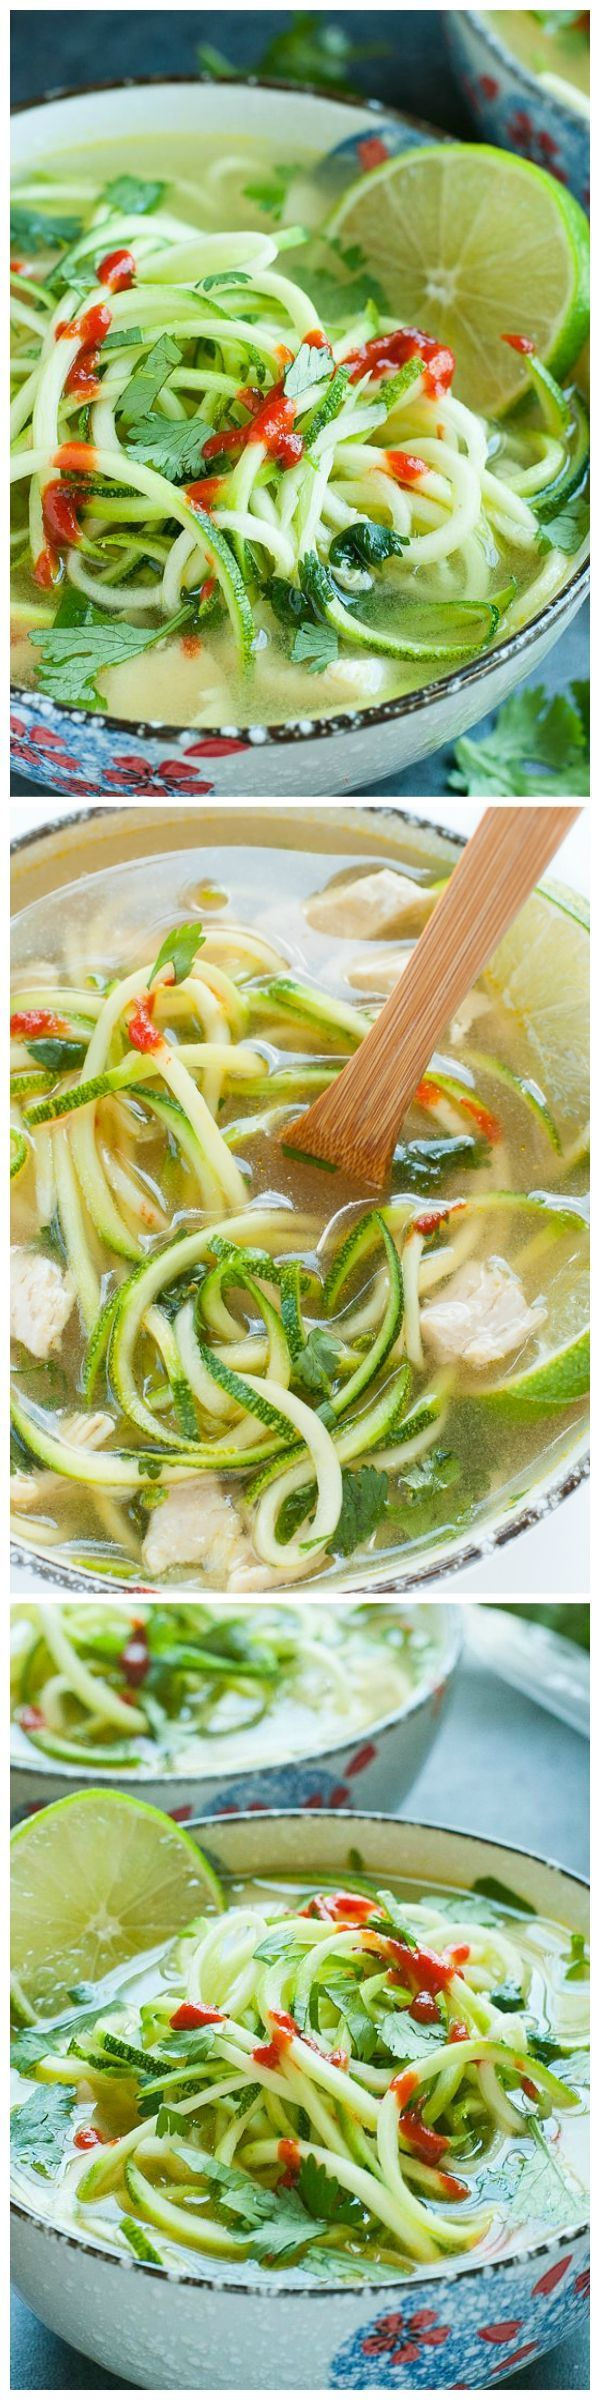 Spicy Sriracha and Lime Chicken Zoodle Soup - Easy and healthy low-carb soup you will instantly love!! #zoodles